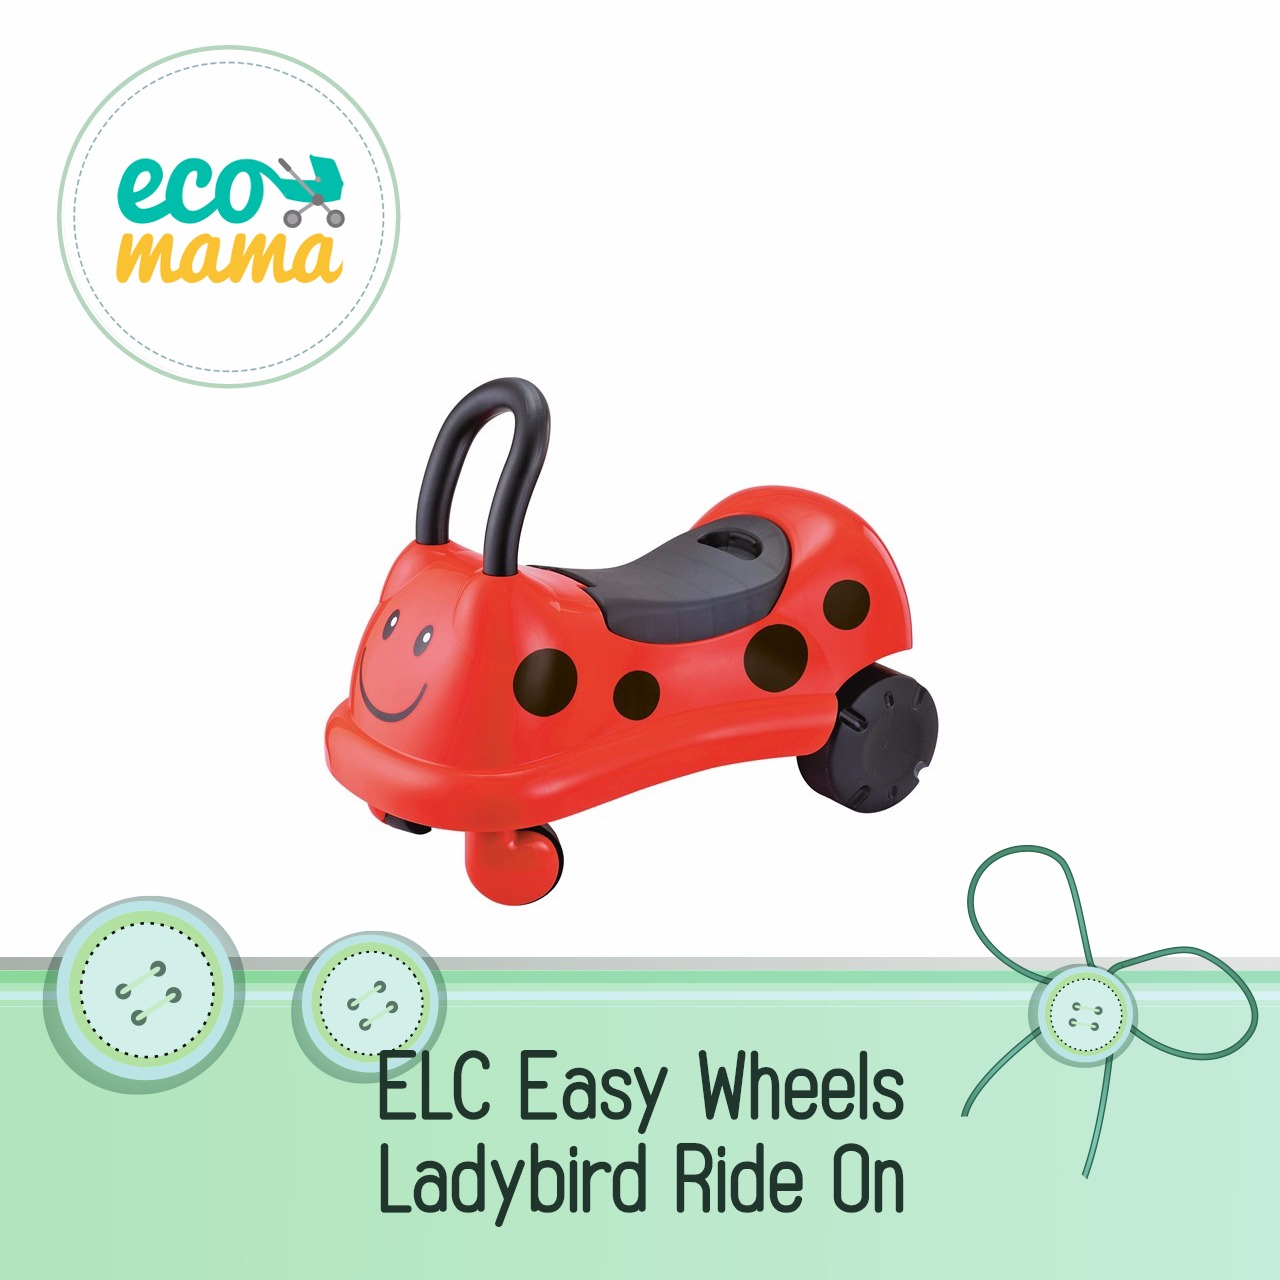 ELC Easy Wheels LadyBird Ride On